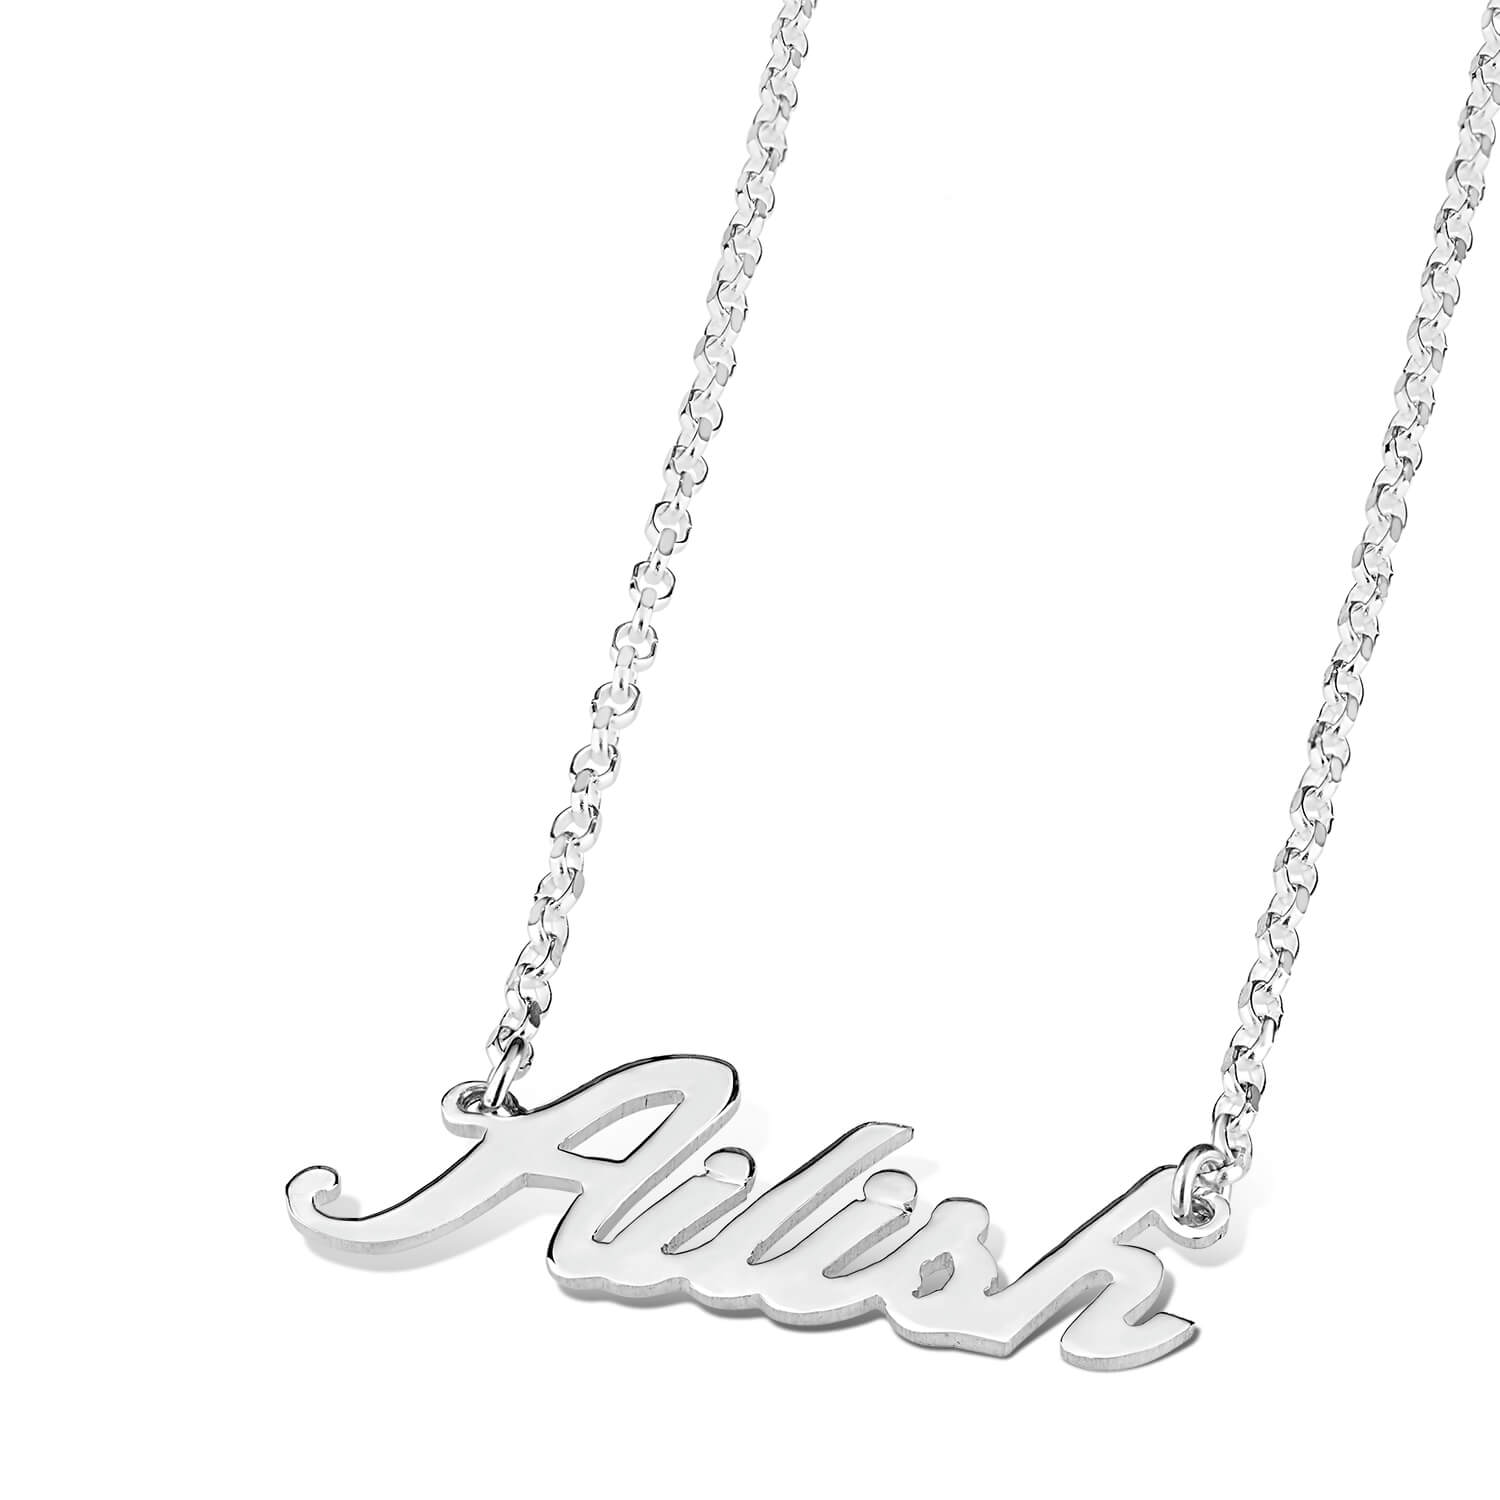 Sterling Silver Personalised Name Necklace (up to 6 letters) (Special Order)